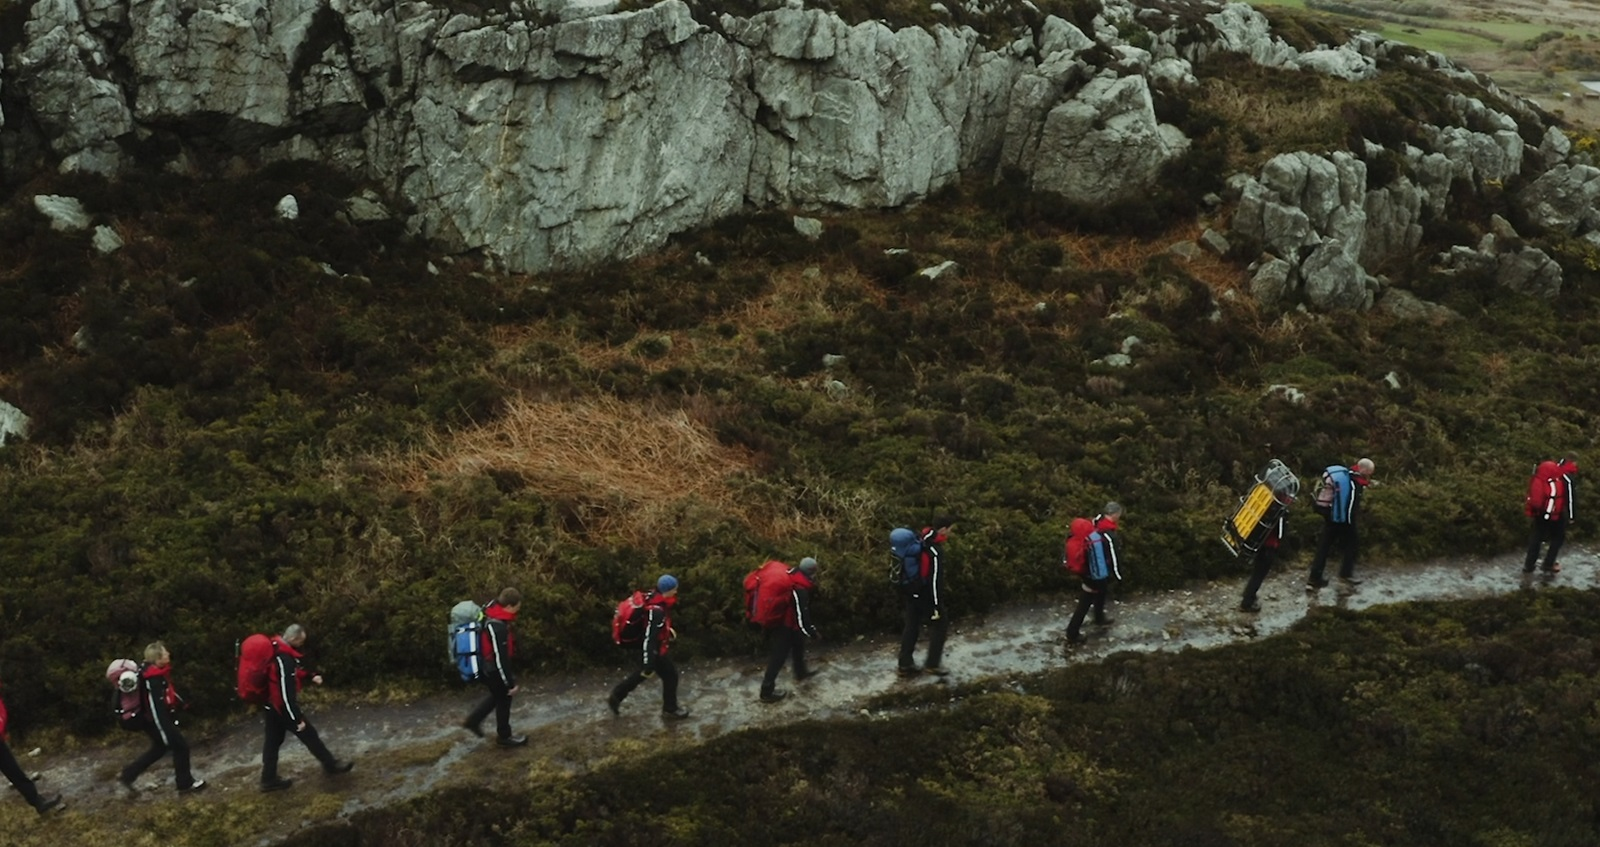 The RAF Valley team walking on a mountain